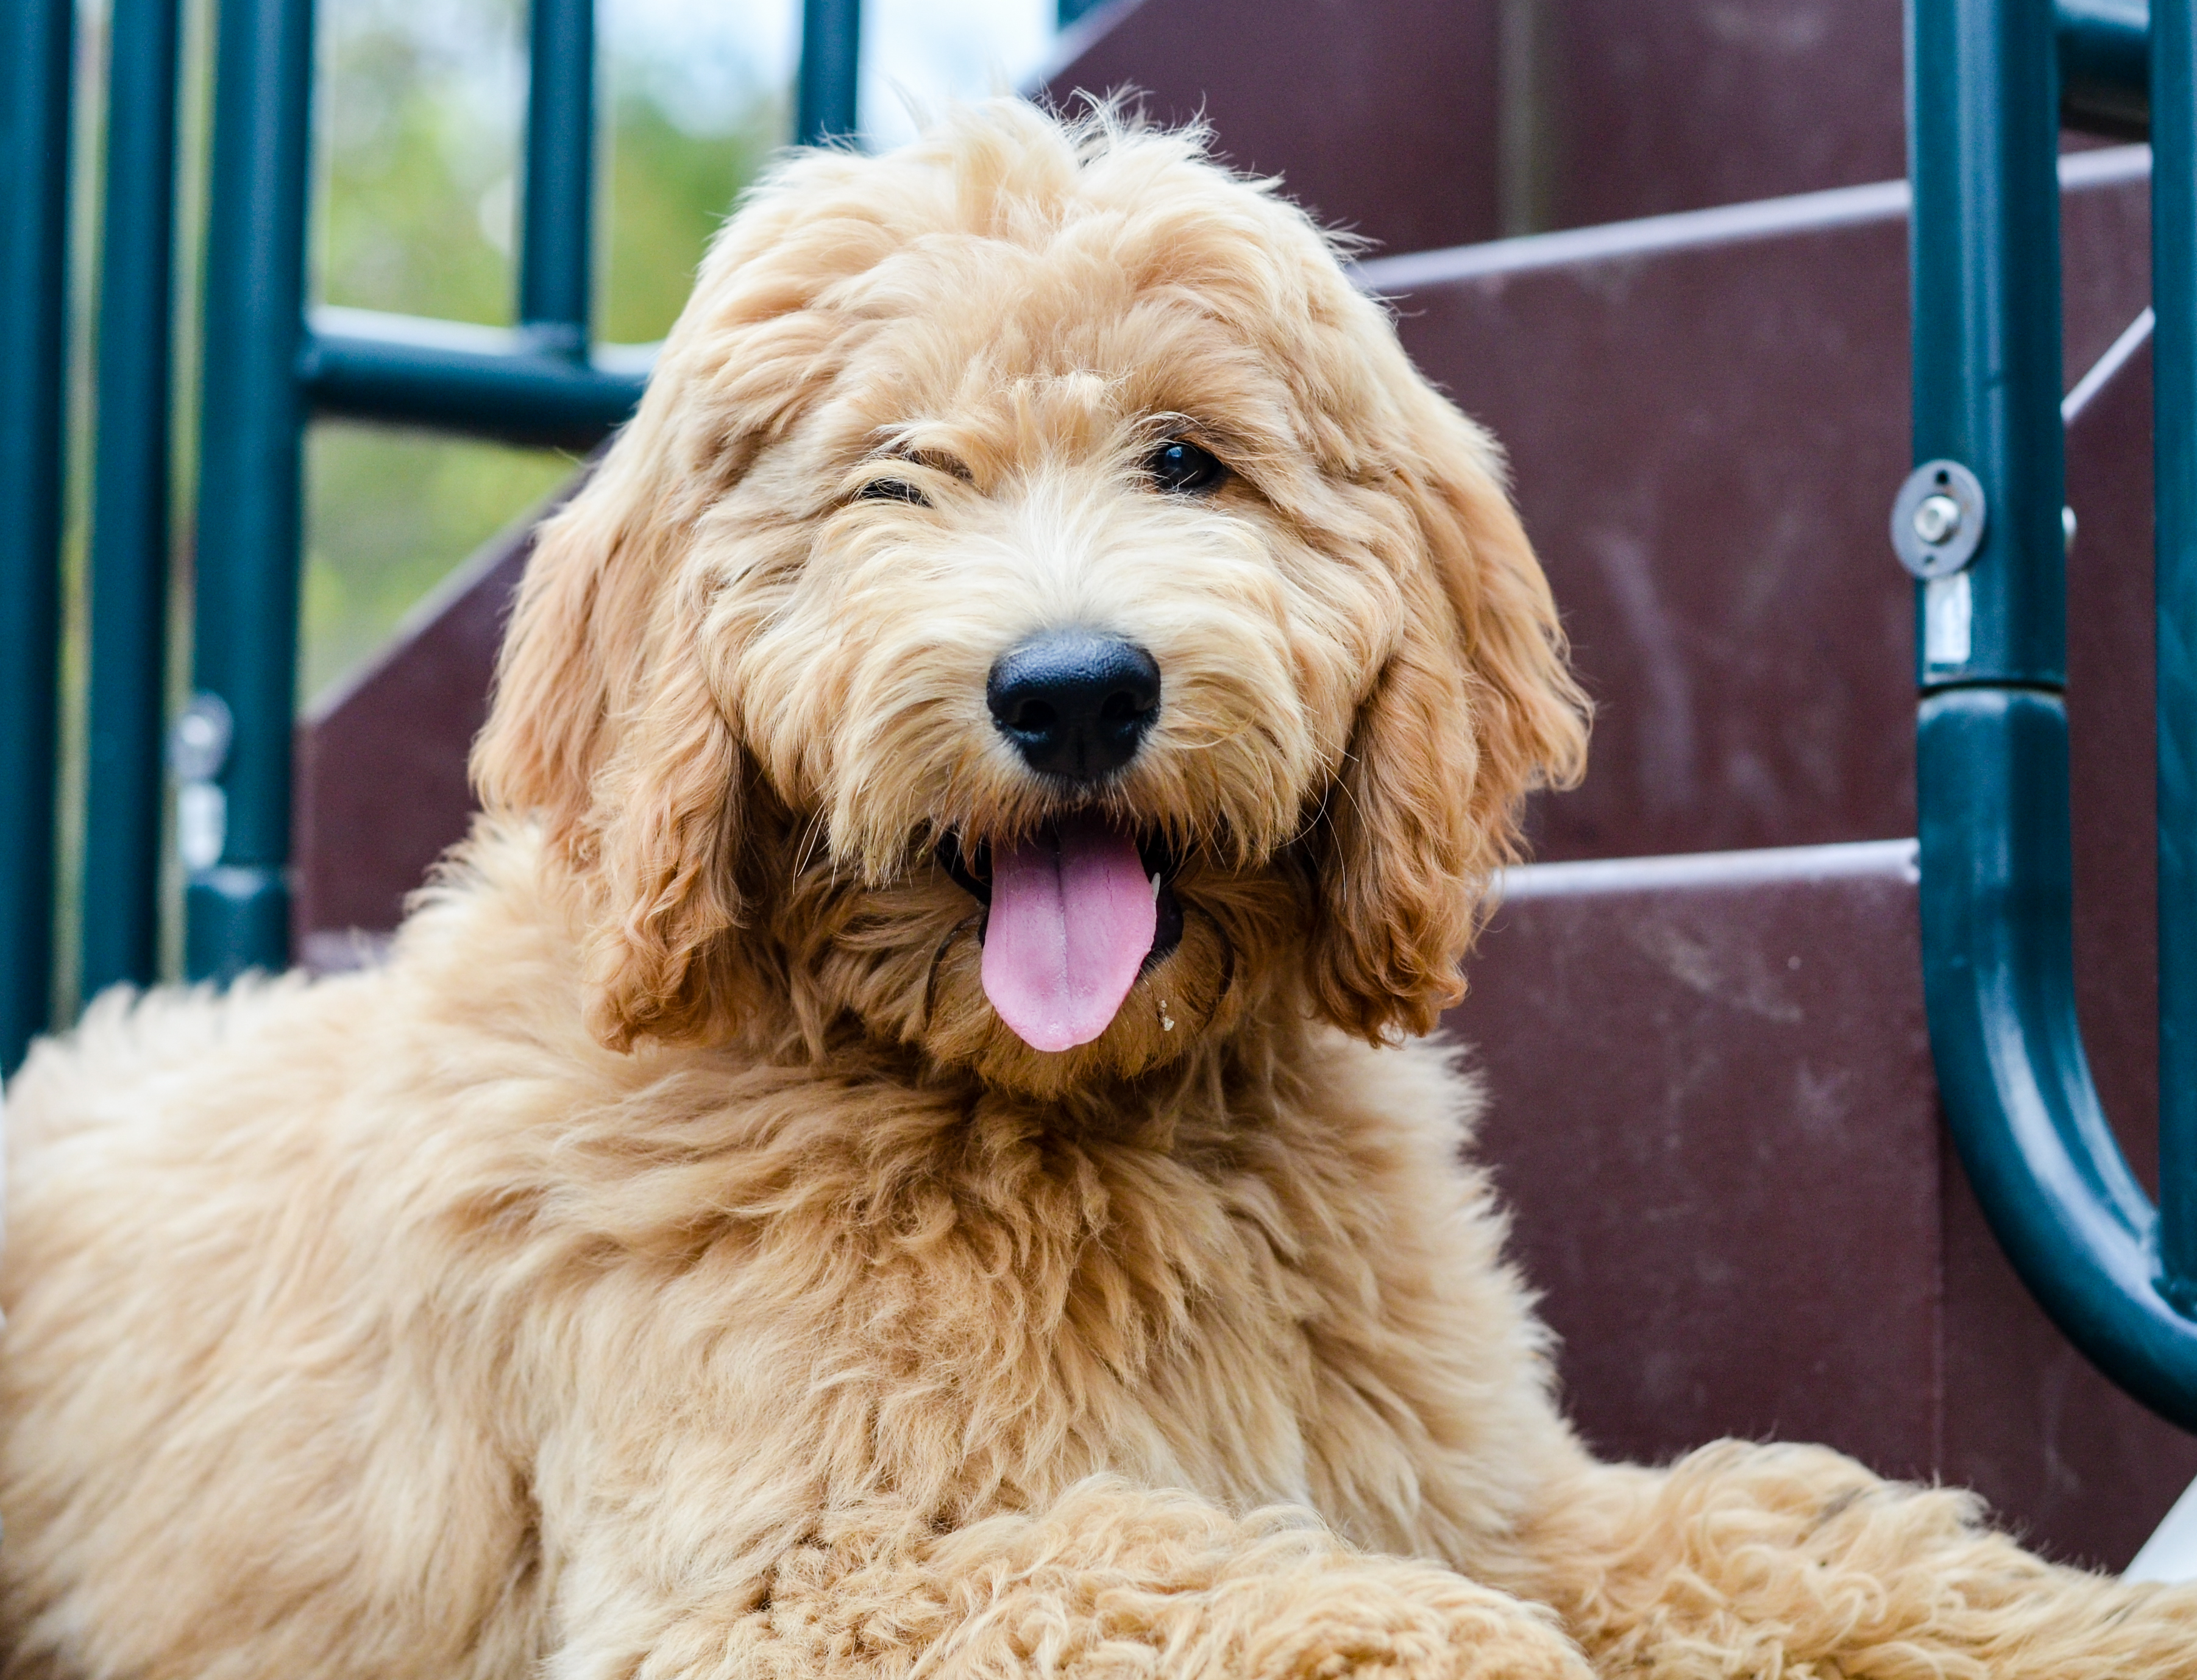 goldendoodle haircuts goldendoodle grooming timberidge how to groom a goldendoodle timberidge goldendoodles